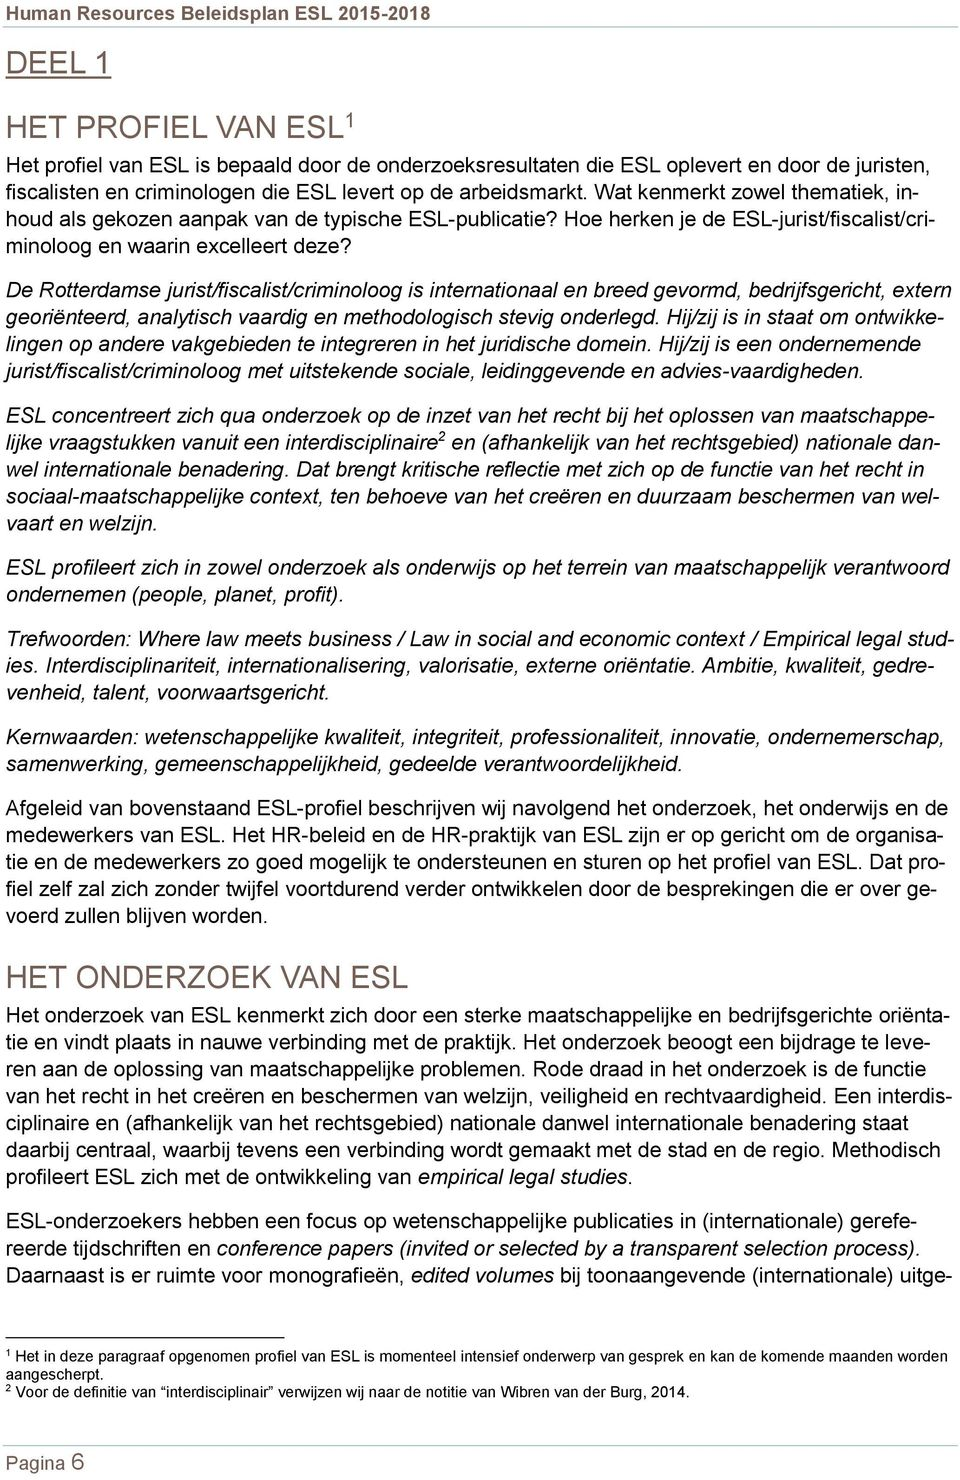 De Rotterdamse jurist/fiscalist/criminoloog is internationaal en breed gevormd, bedrijfsgericht, extern georiënteerd, analytisch vaardig en methodologisch stevig onderlegd.